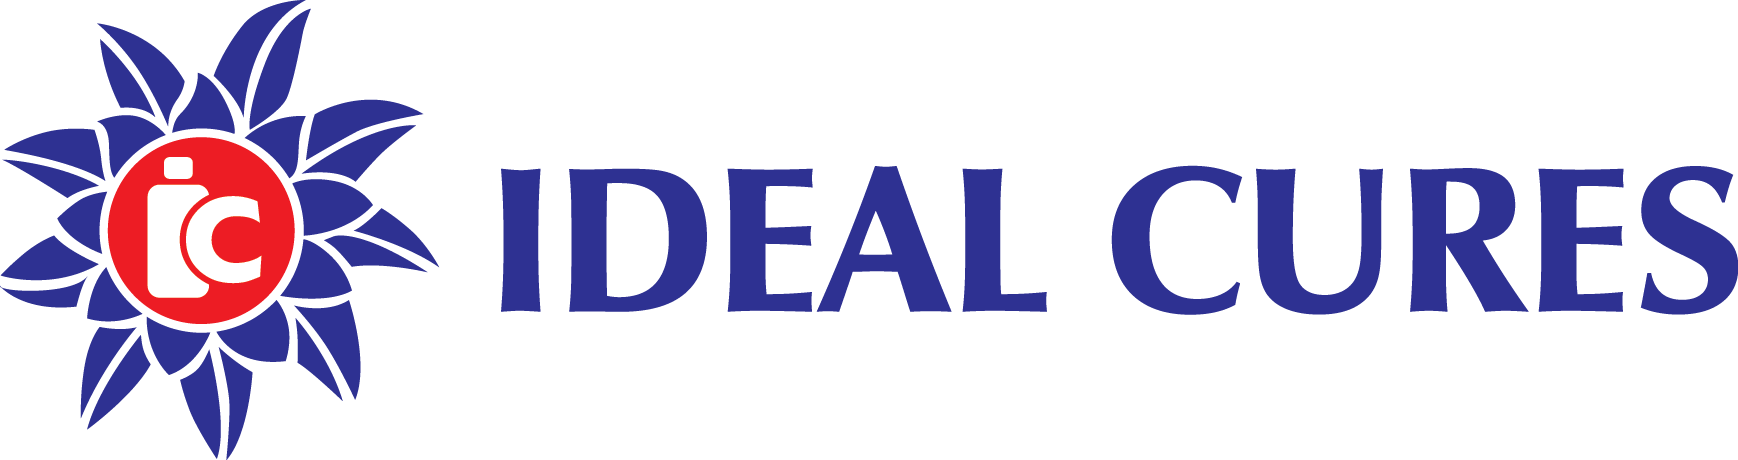 Ideal Cures Logo